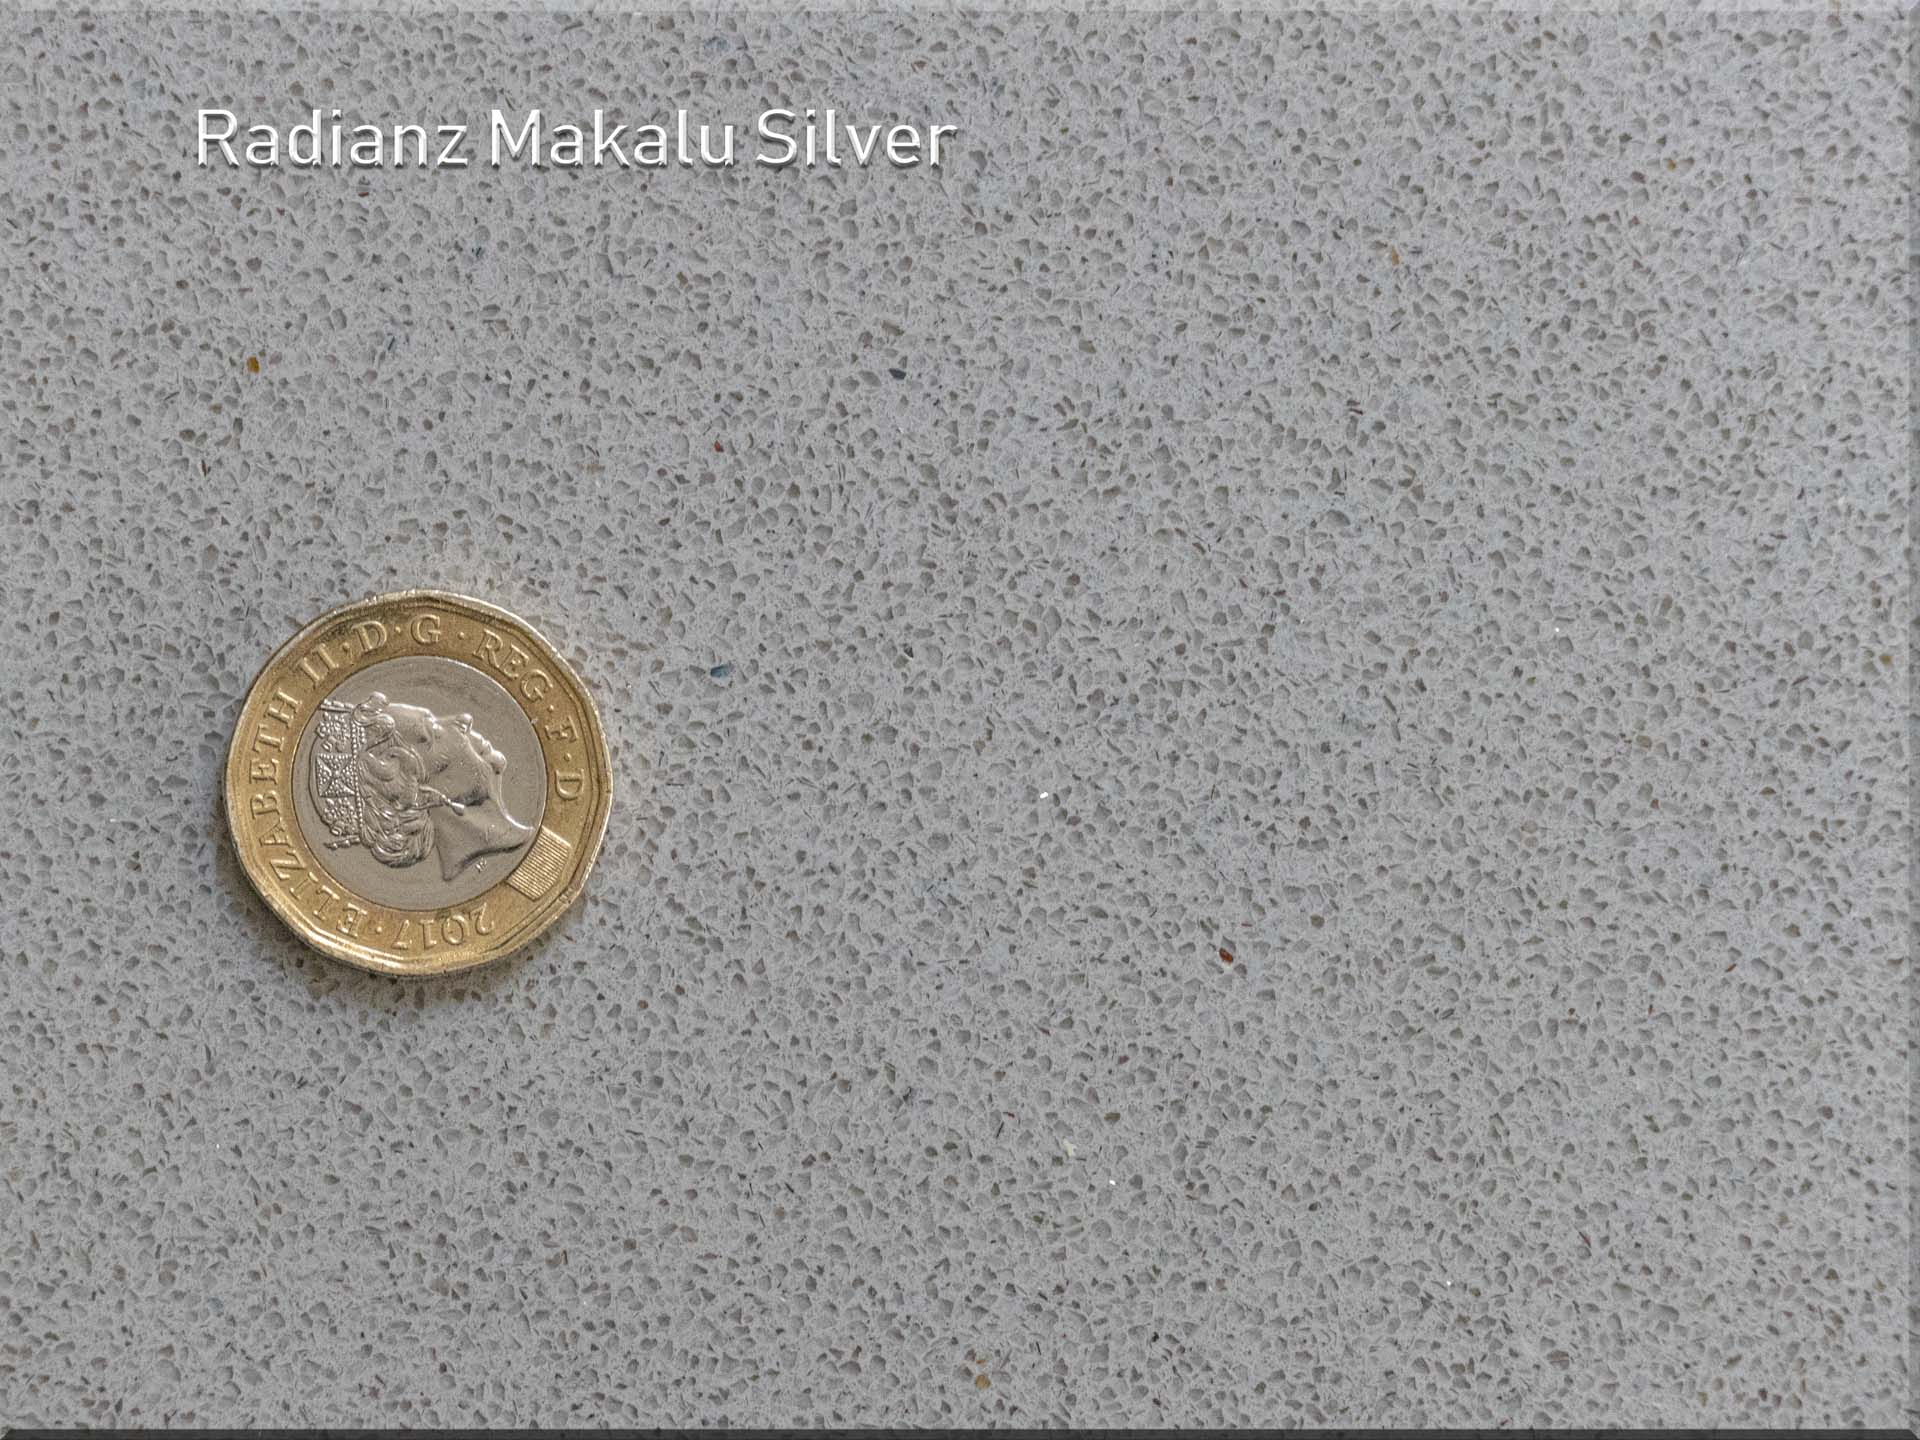 radianz makalu silver small sparkly quartz worktops subtle special offer july 2019 164026